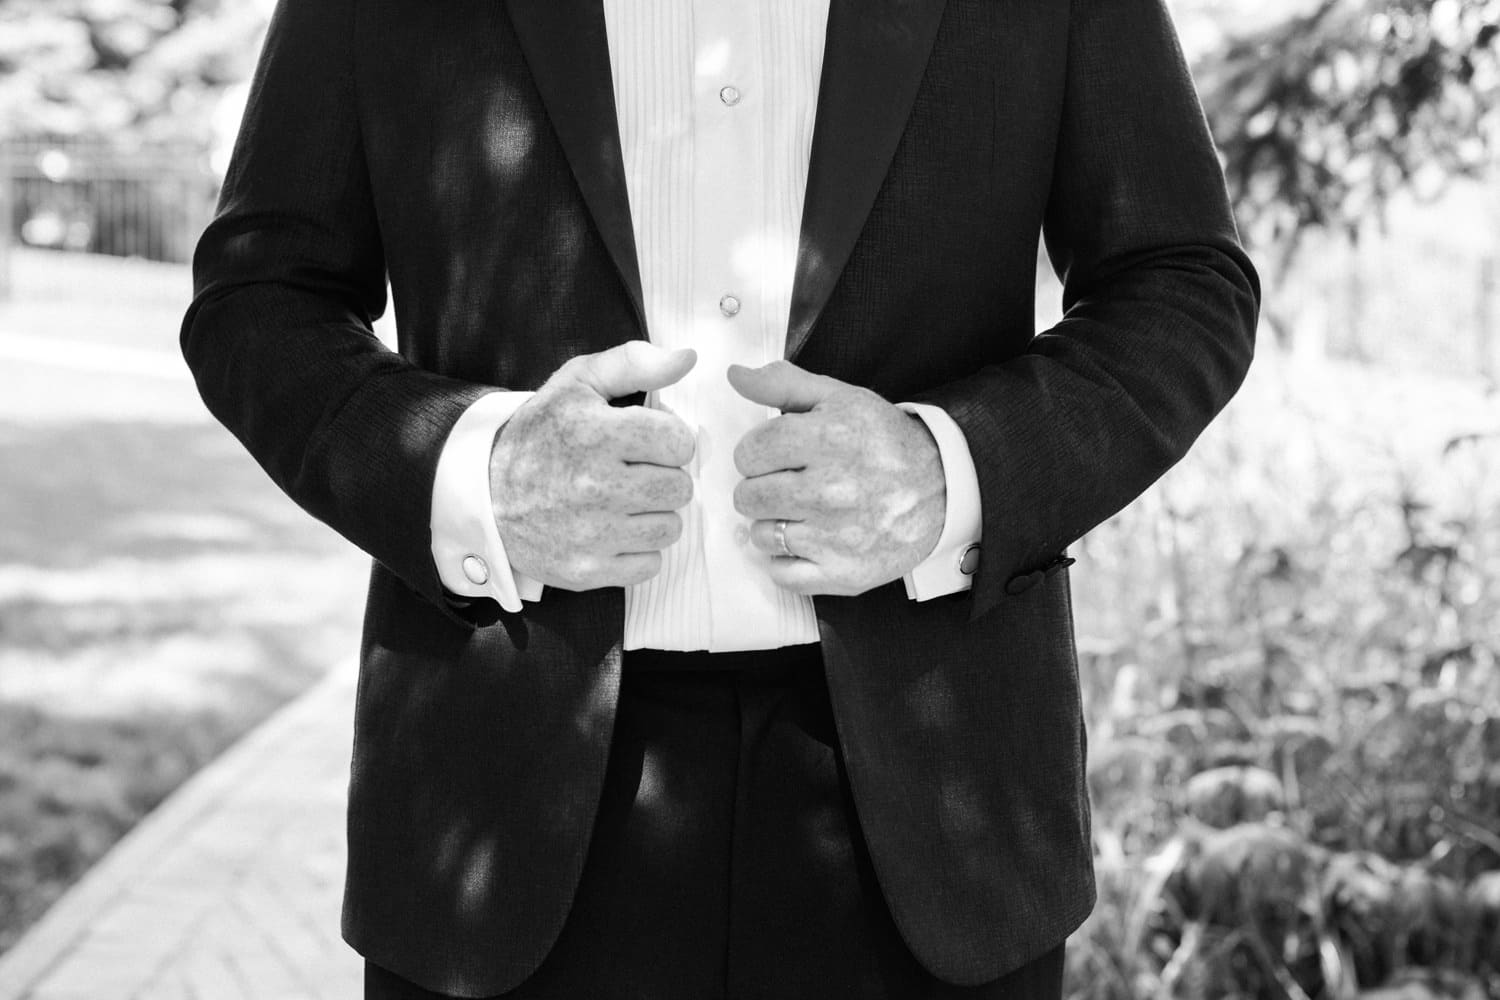 Groom getting ready photo, black and white image of a groom in a tux